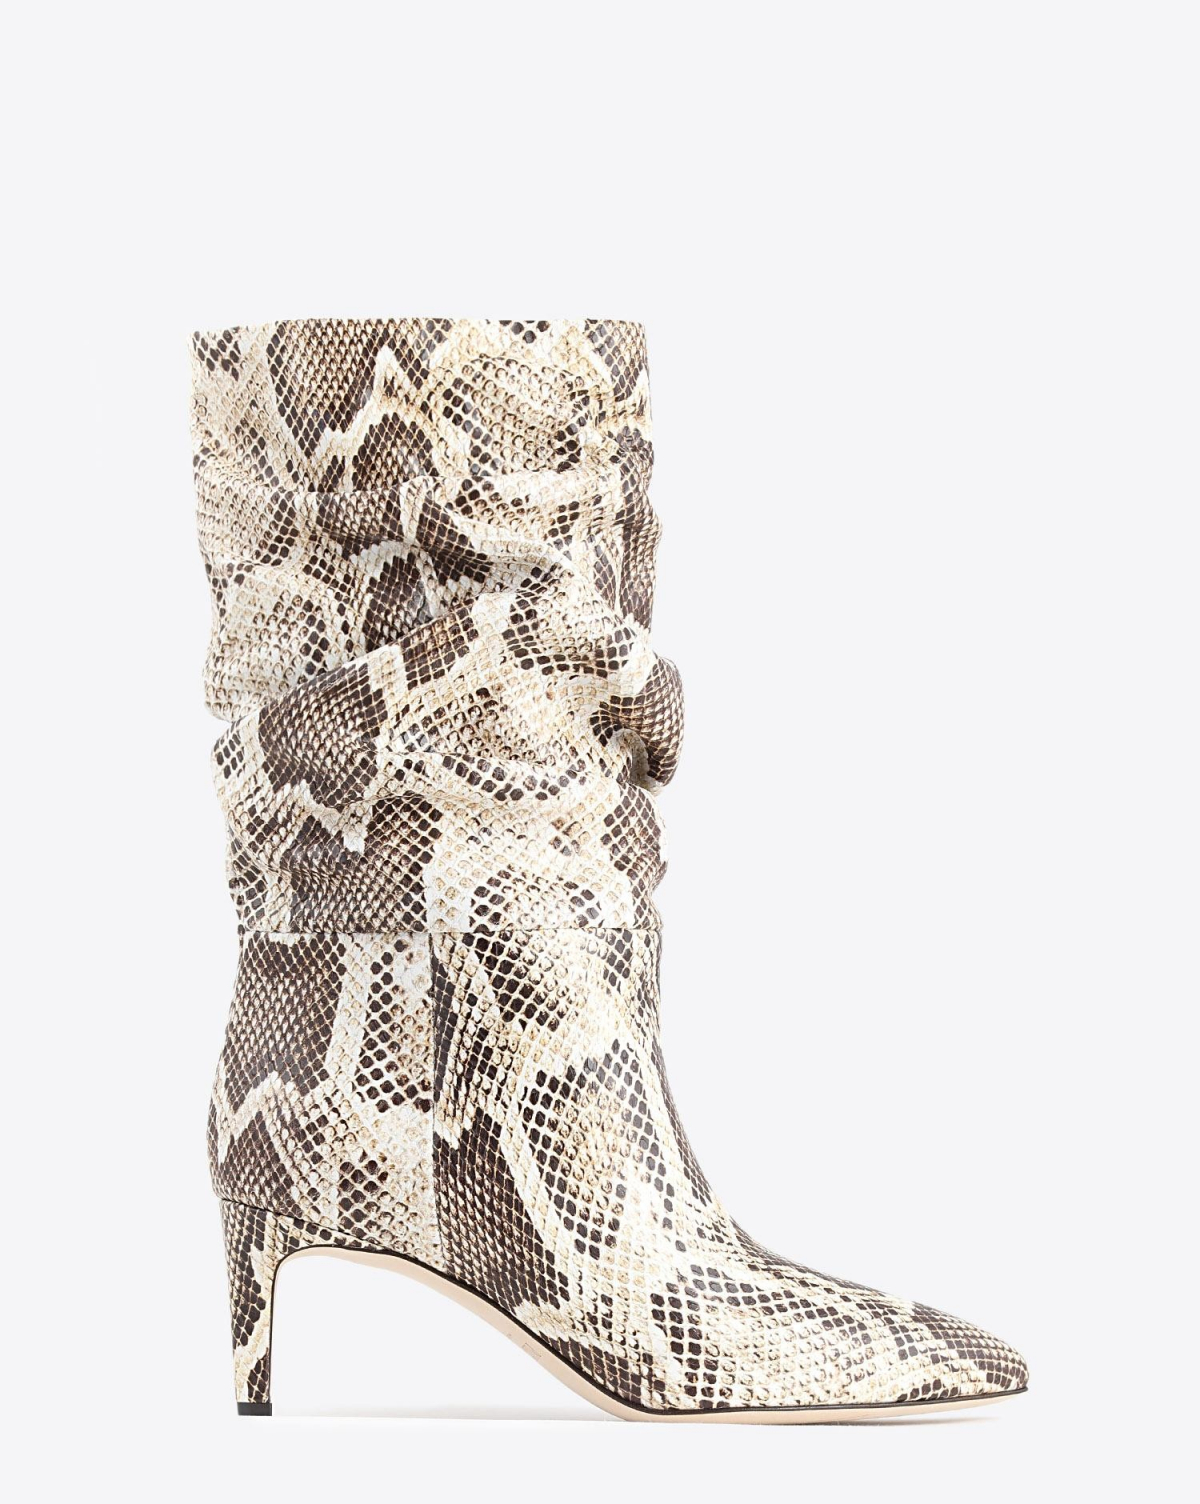 Paris Texas Pré-Collection Bottes Slouchy Imprimé Serpent - Seppia